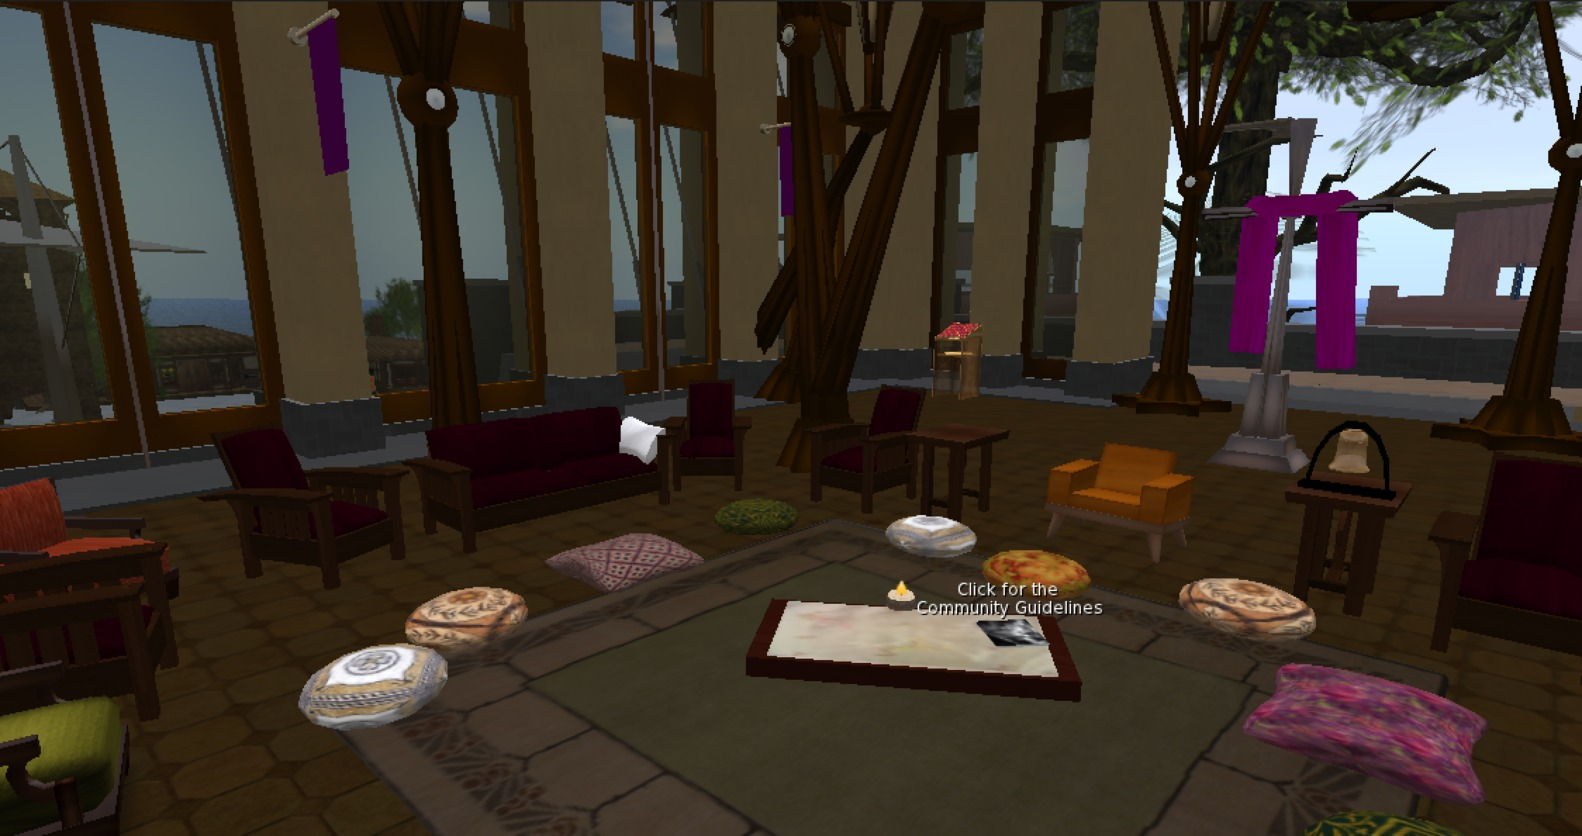 Gallery of 4 Virtual Spaces in